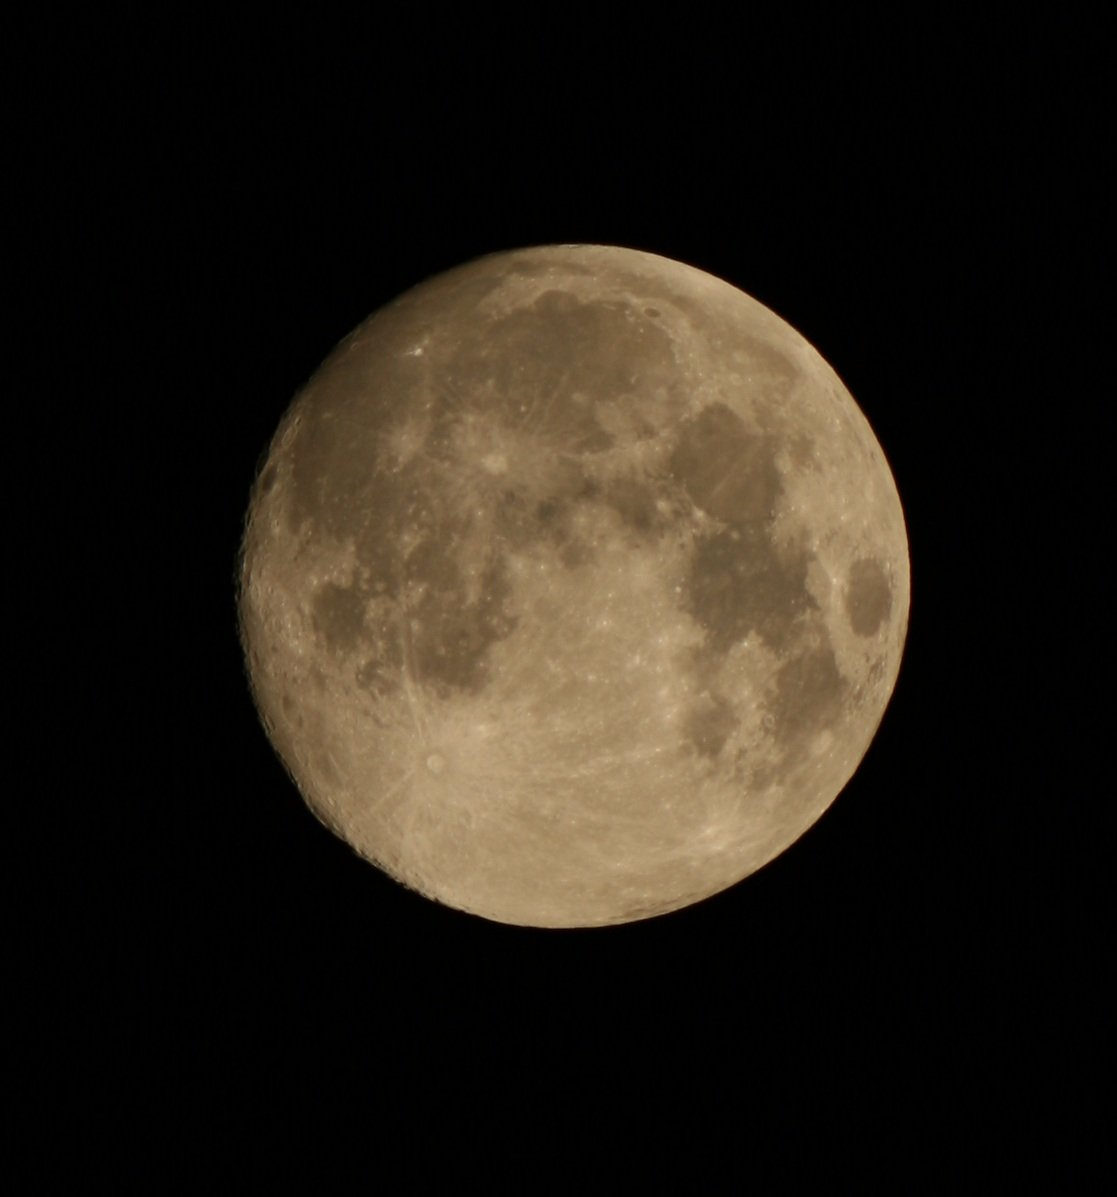 Last night's supermoon, photographed by David Moore of Astronomy Ireland www.astronomy.ie